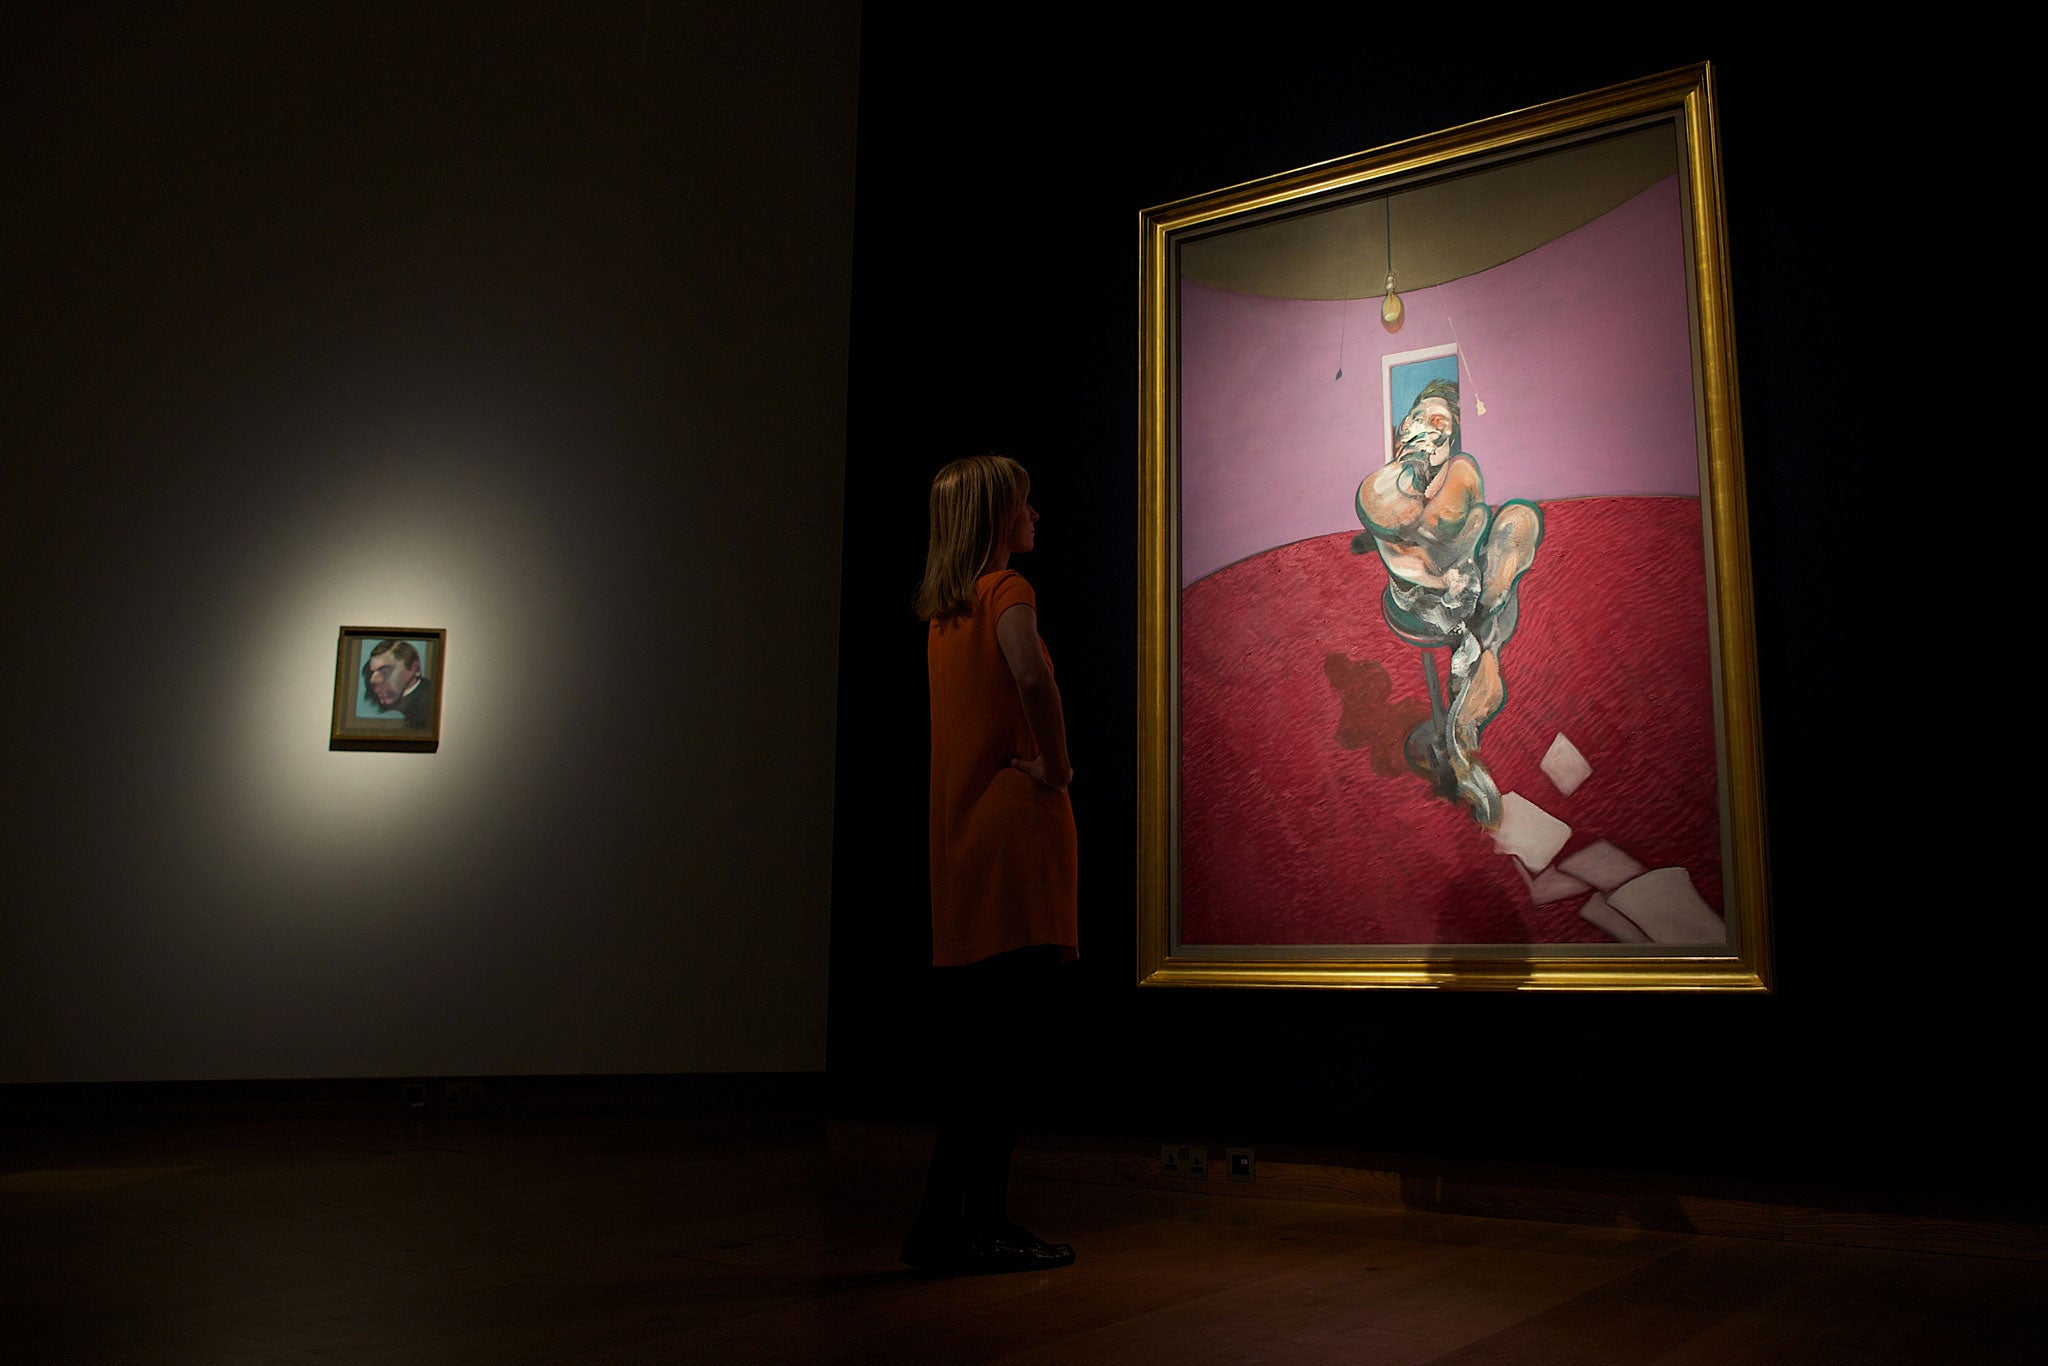 Francis Bacon 'George Dyer Talking' portrait sells for £42